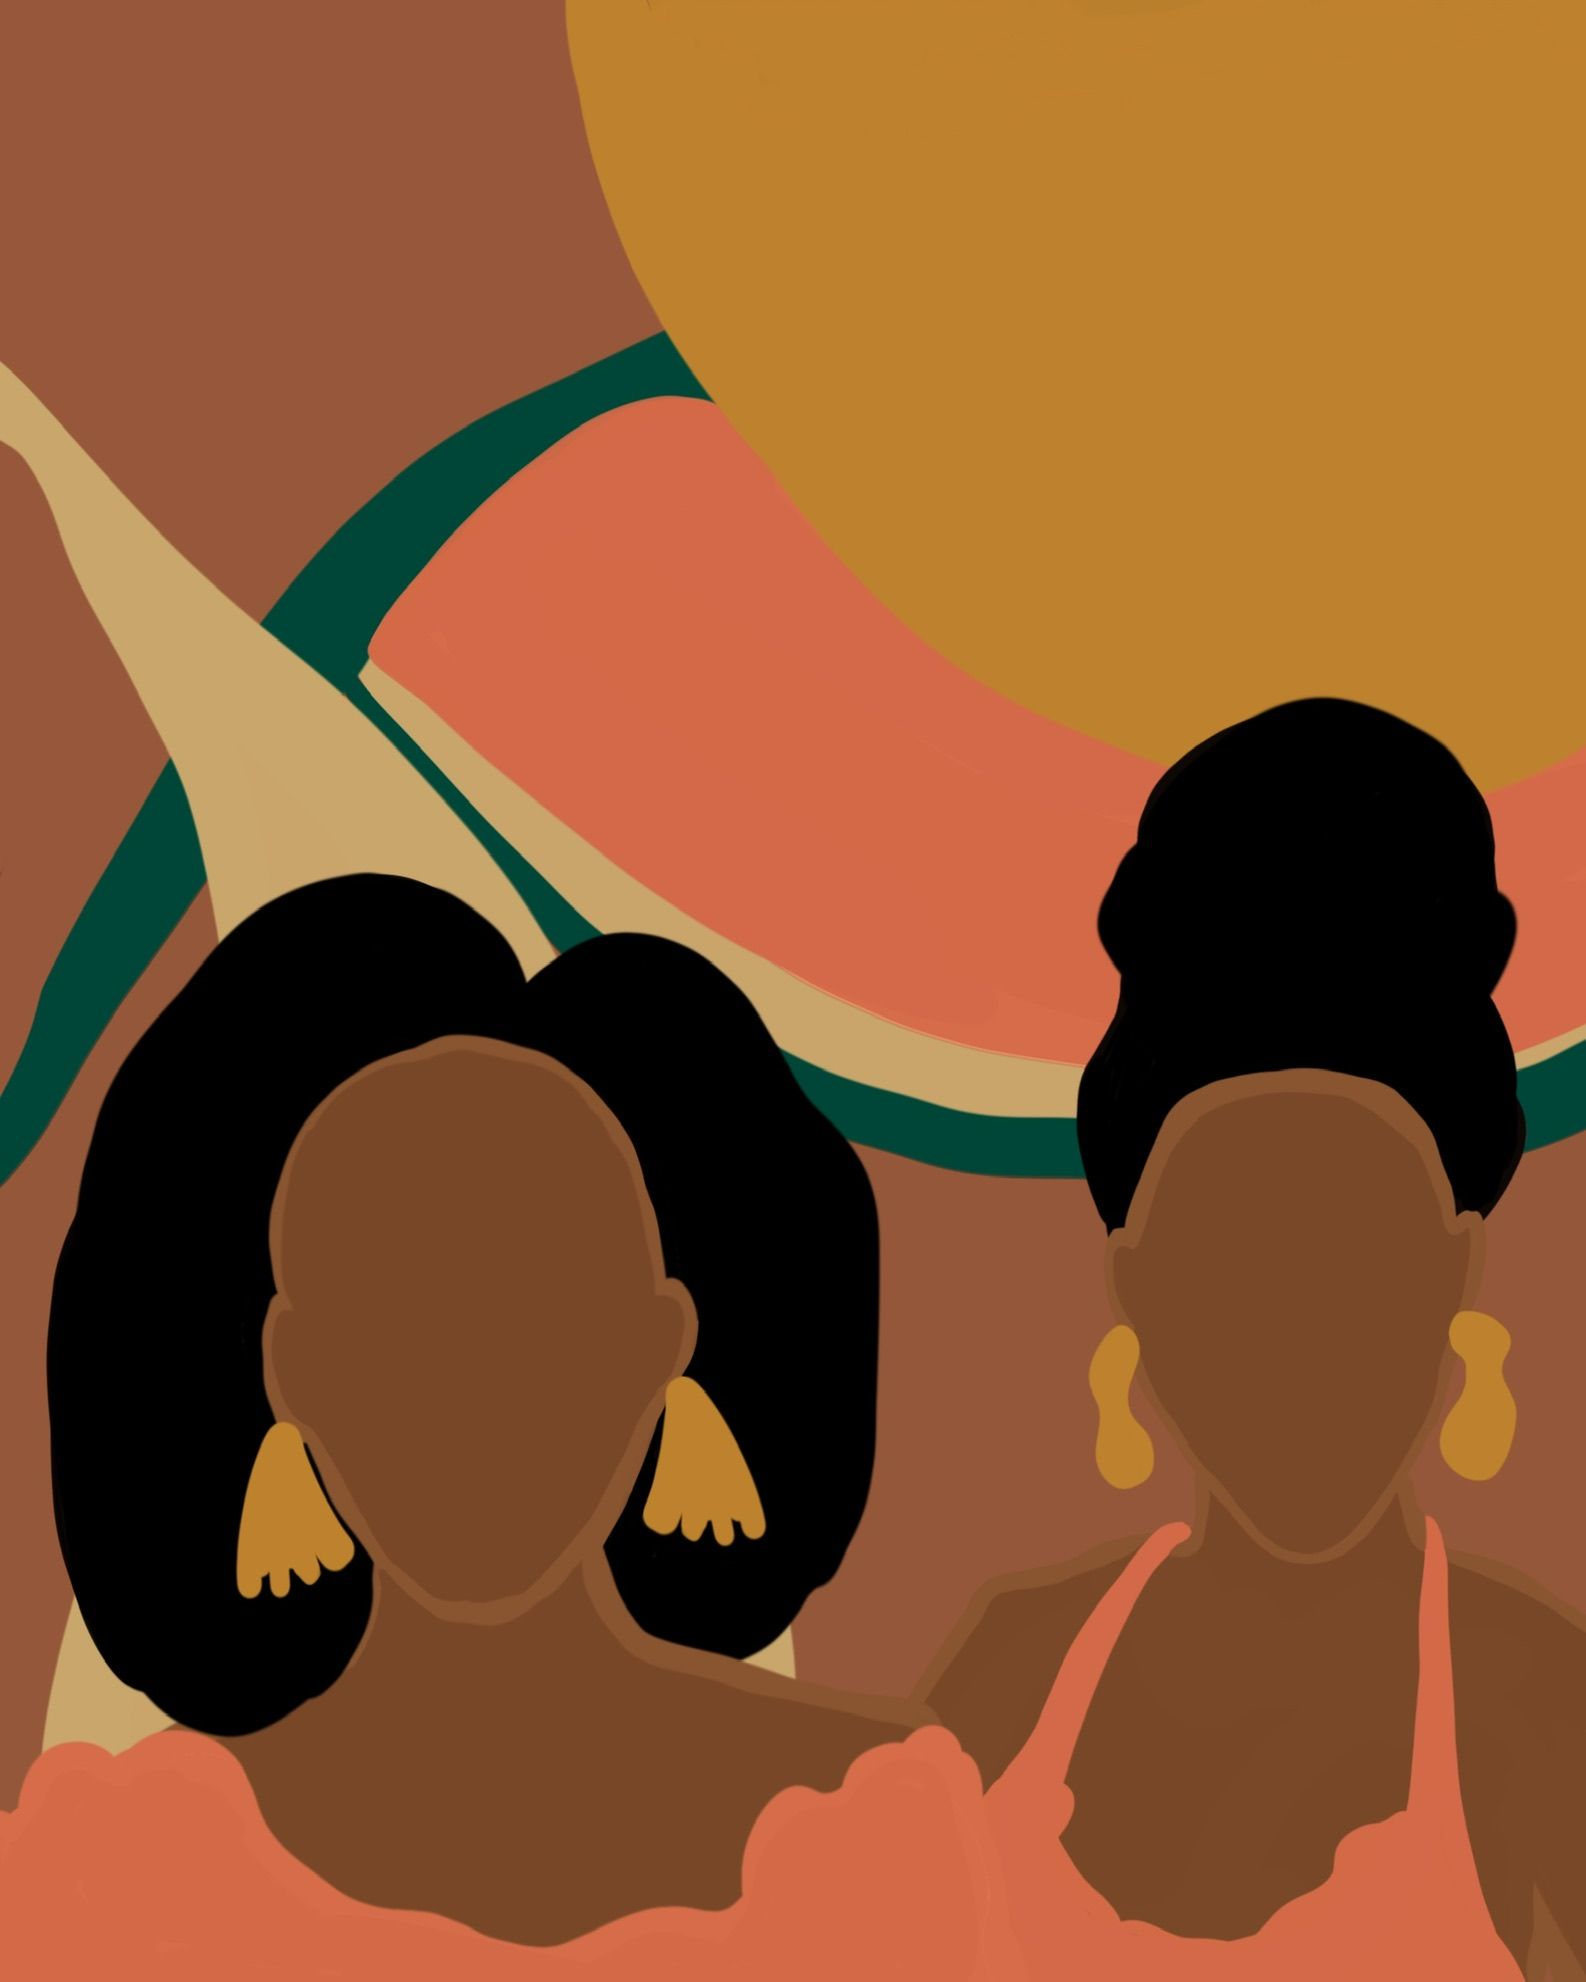 'Horizon' by KLigg is a colorful masterpiece featuring two Black women.